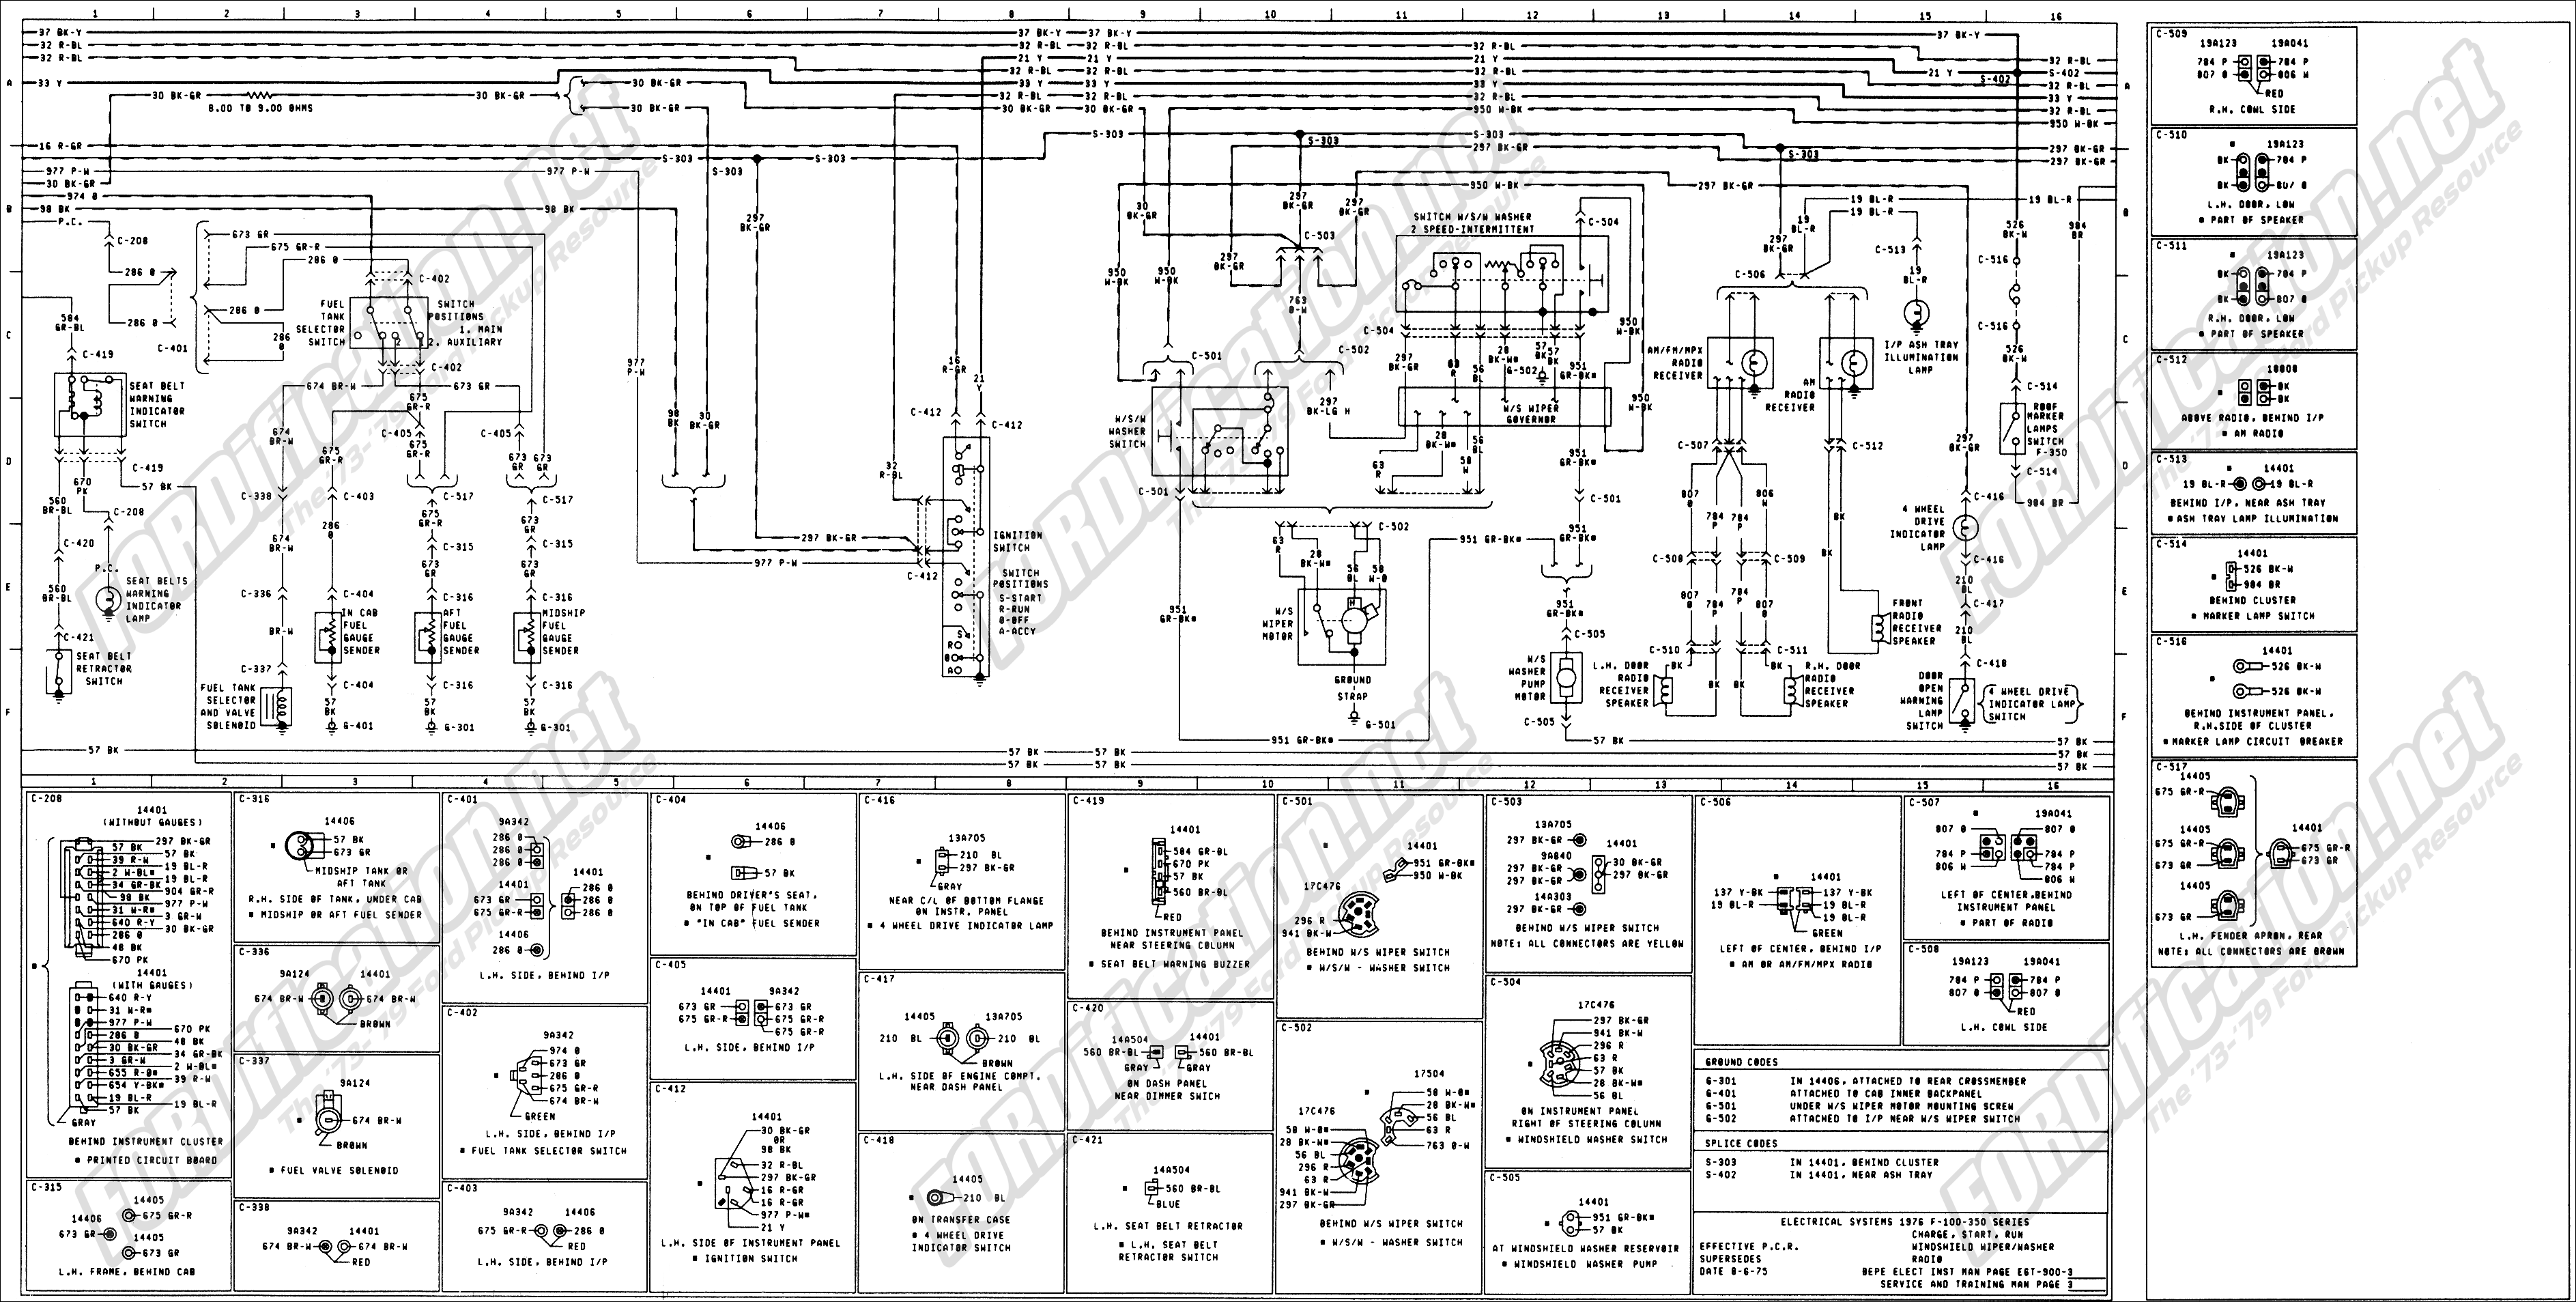 1973 1979 ford truck wiring diagrams schematics fordification net rh fordification net 1997 ford f350 wiring schematic 2008 ford f350 wiring schematic